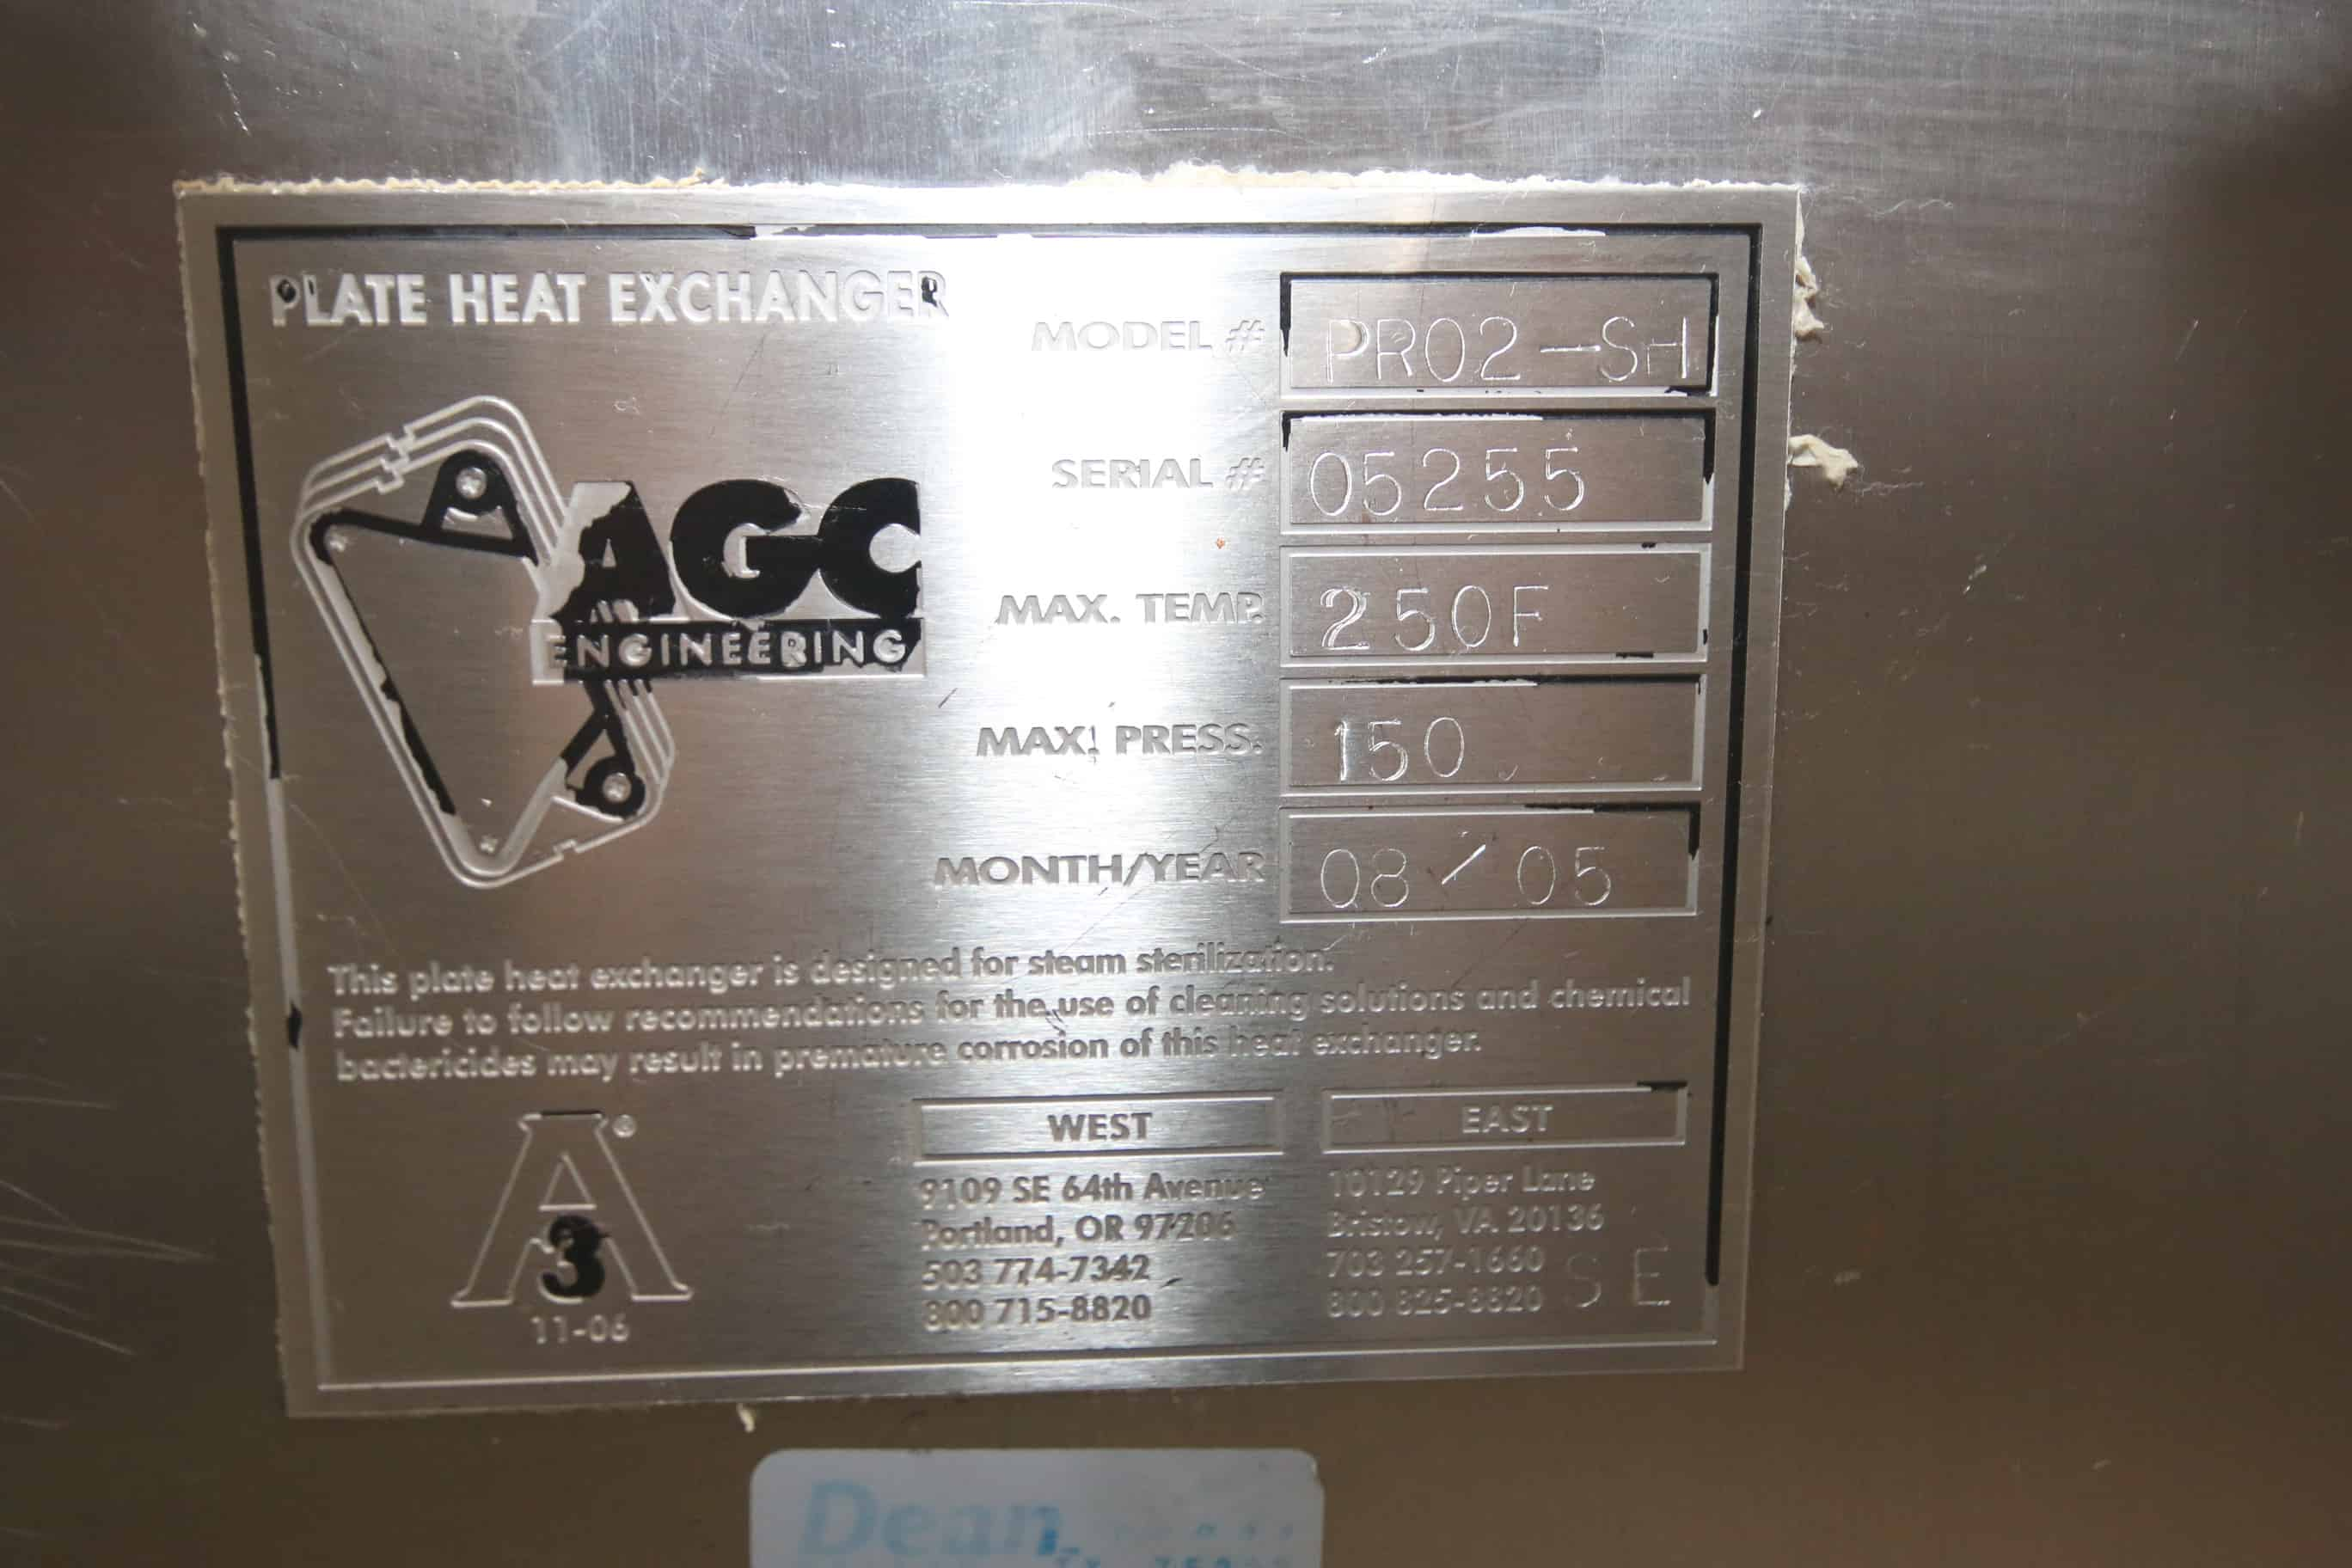 2005 AGC S/S Cream Plate Press, Model PRO2-SH, S/N 0525, Max. Temp. 250 Degree F, Max. Pressure 150 psi with (97) Plates includes Pallet of S/S Pipe Connectors, Temperature Sensors and Gauges, M. Davis Group Showroom Auction